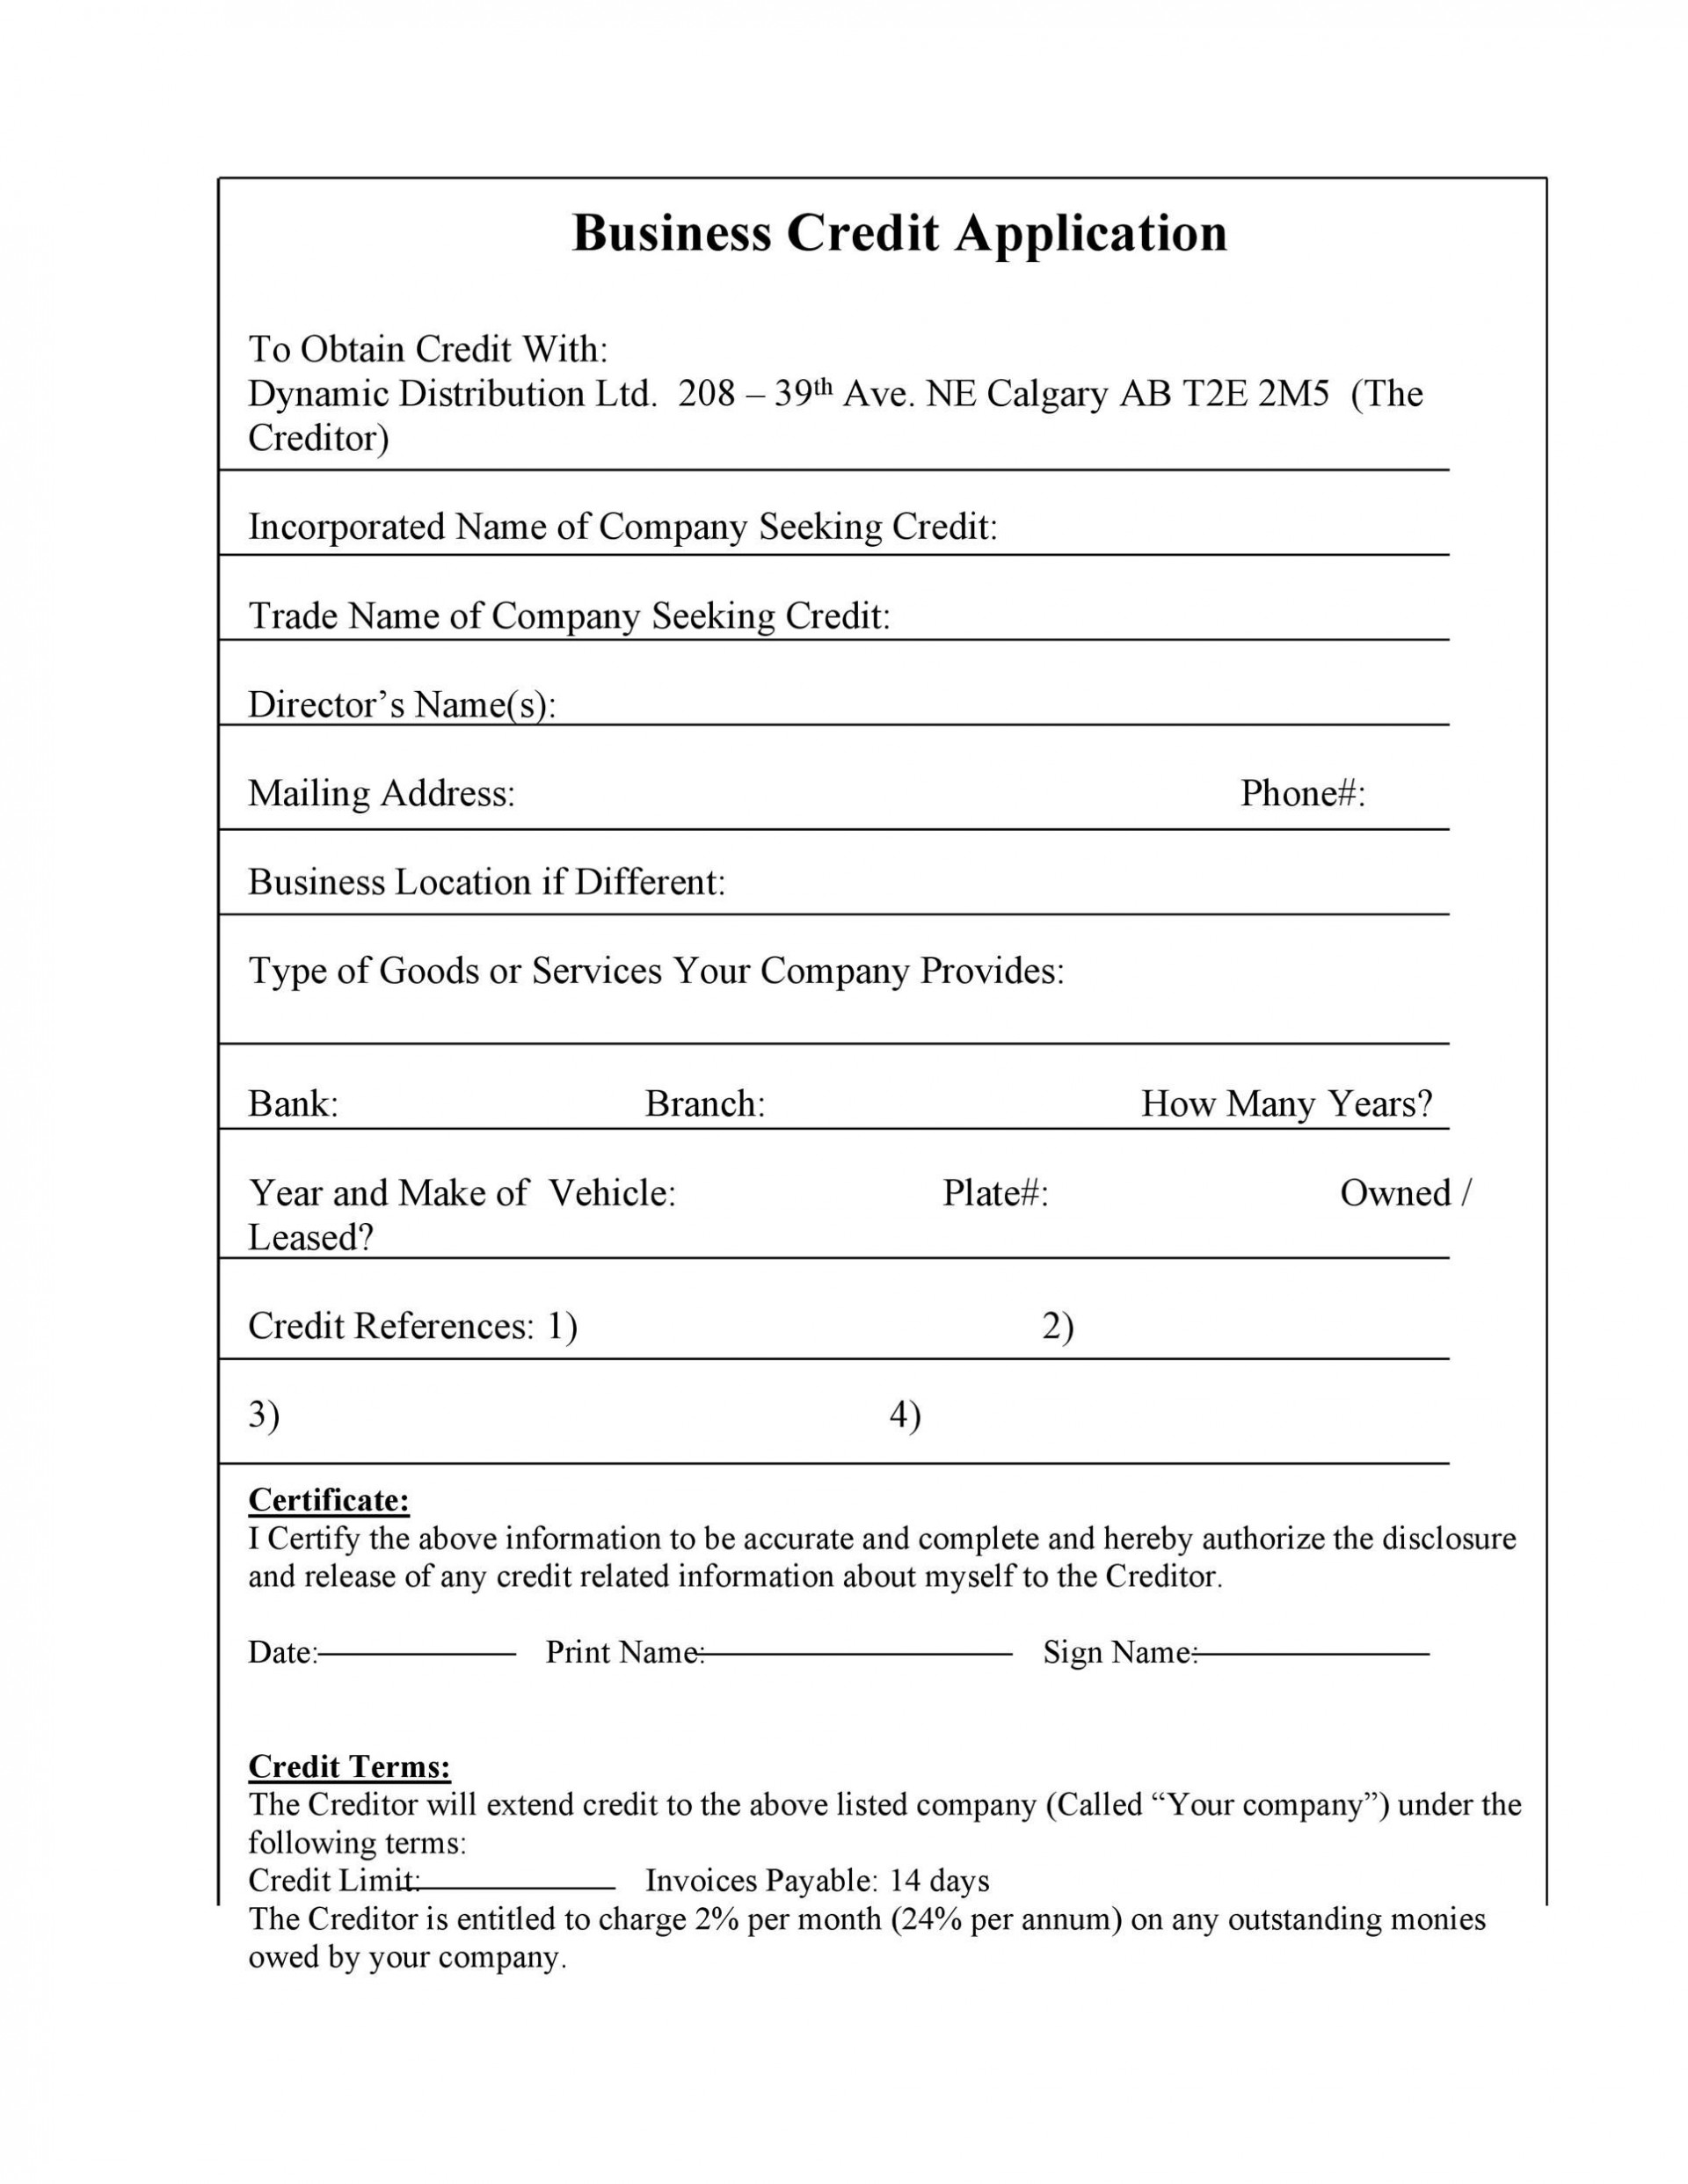 007 Archaicawful Busines Credit Application Form Free Inspiration  Template1920